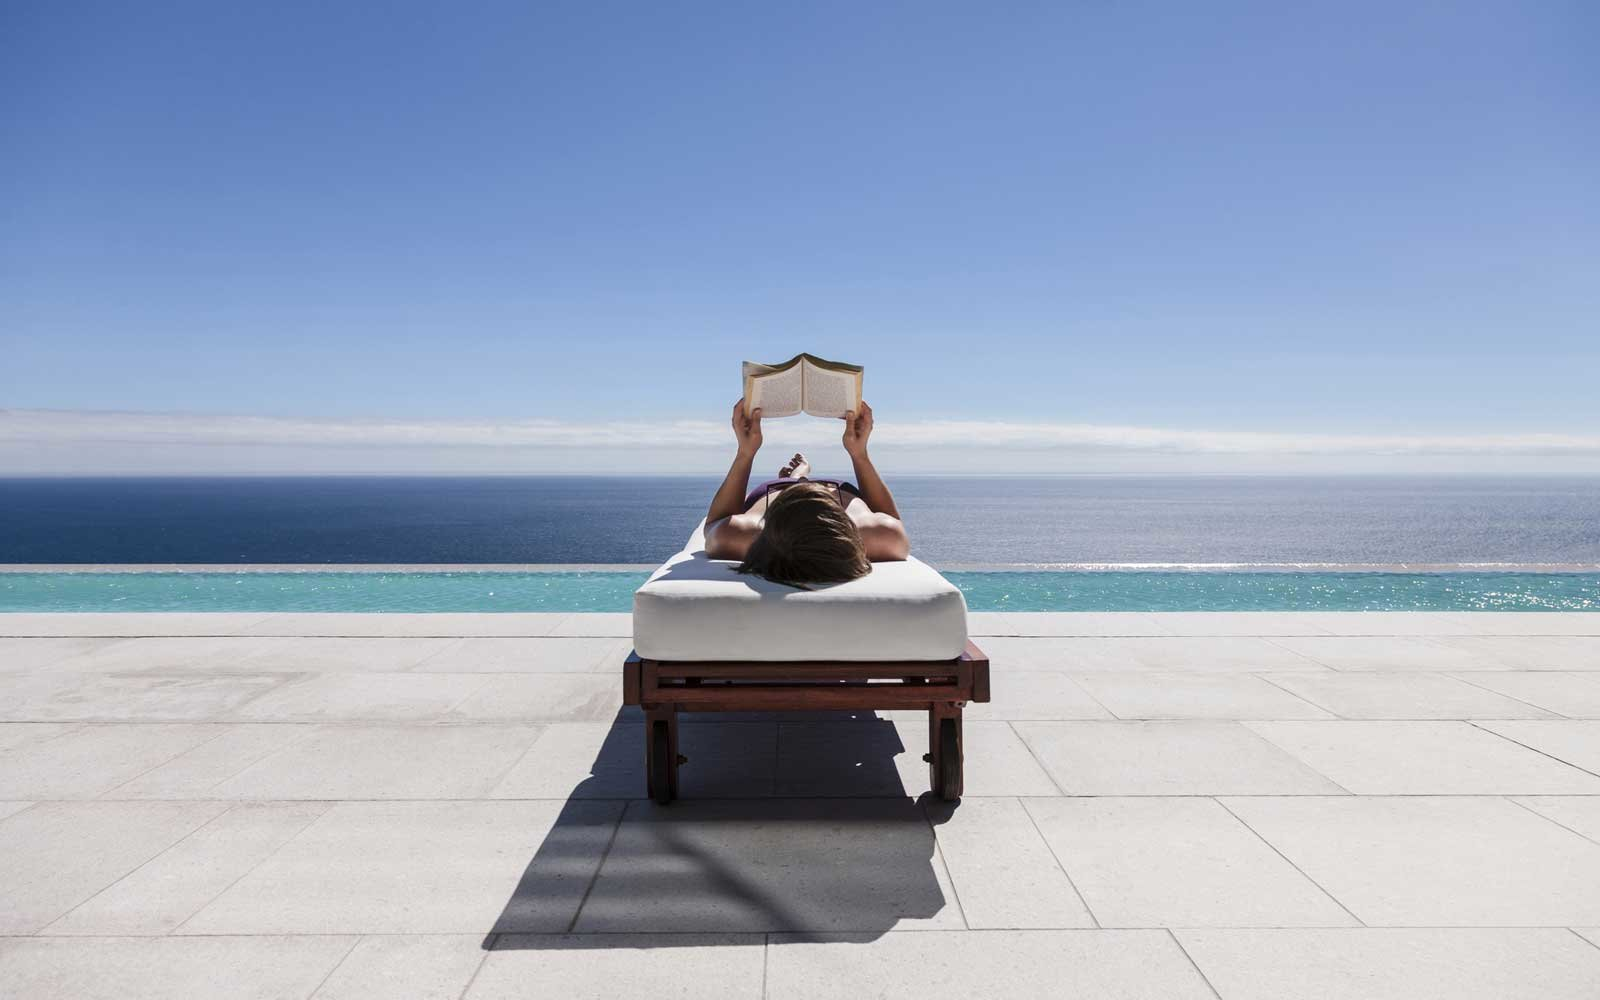 Woman reading on lounge chair at poolside overlooking the ocean